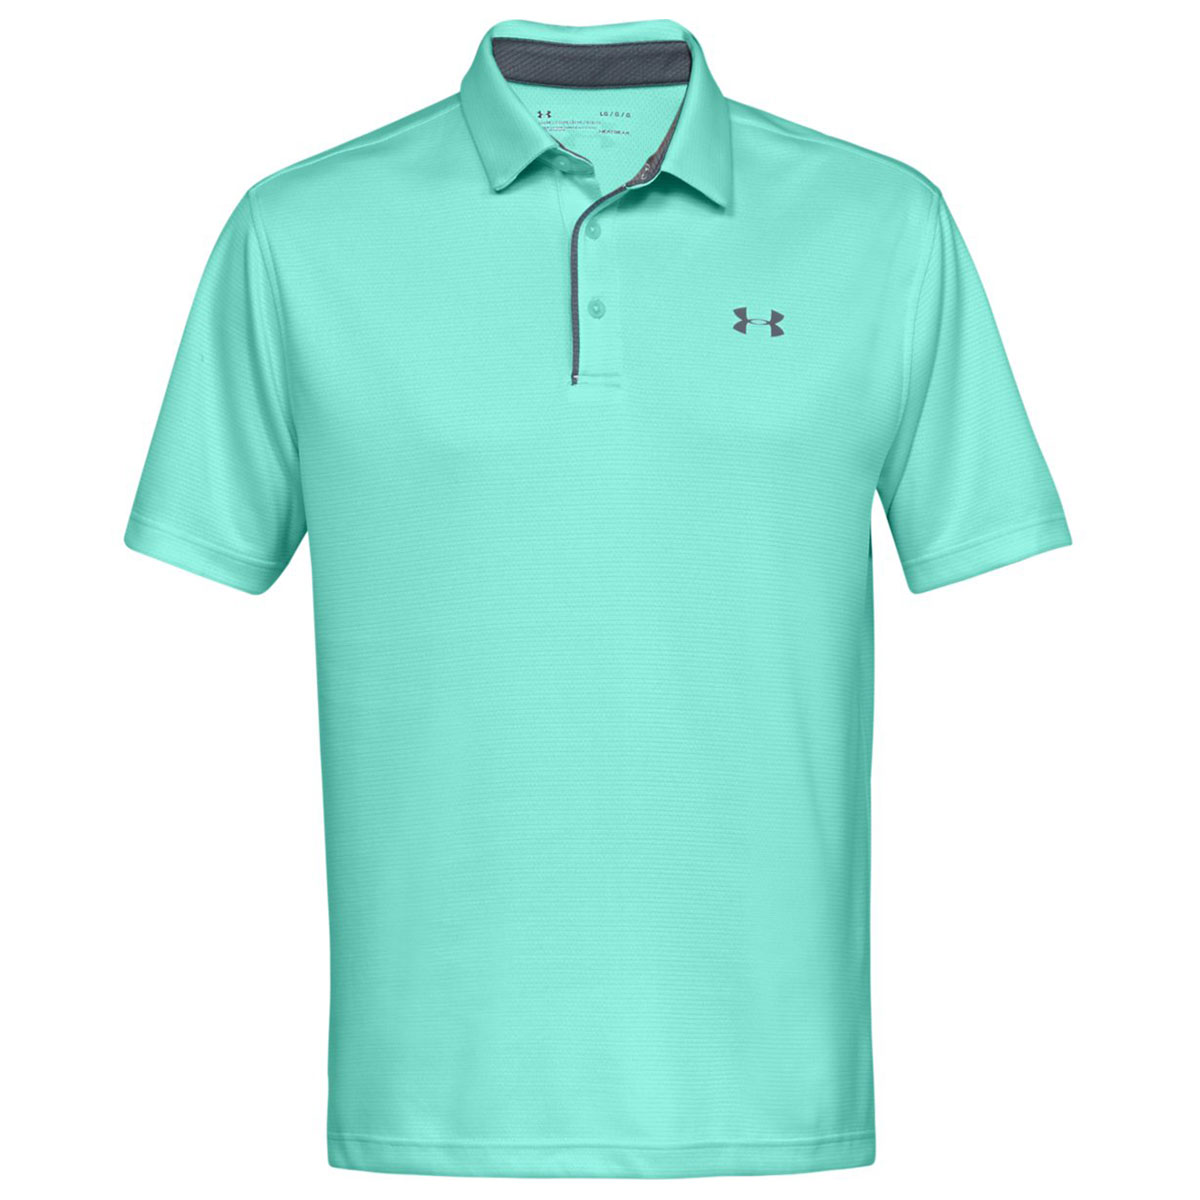 Under-Armour-Mens-Golf-Tech-Wicking-Textured-Soft-Light-Polo-Shirt thumbnail 58